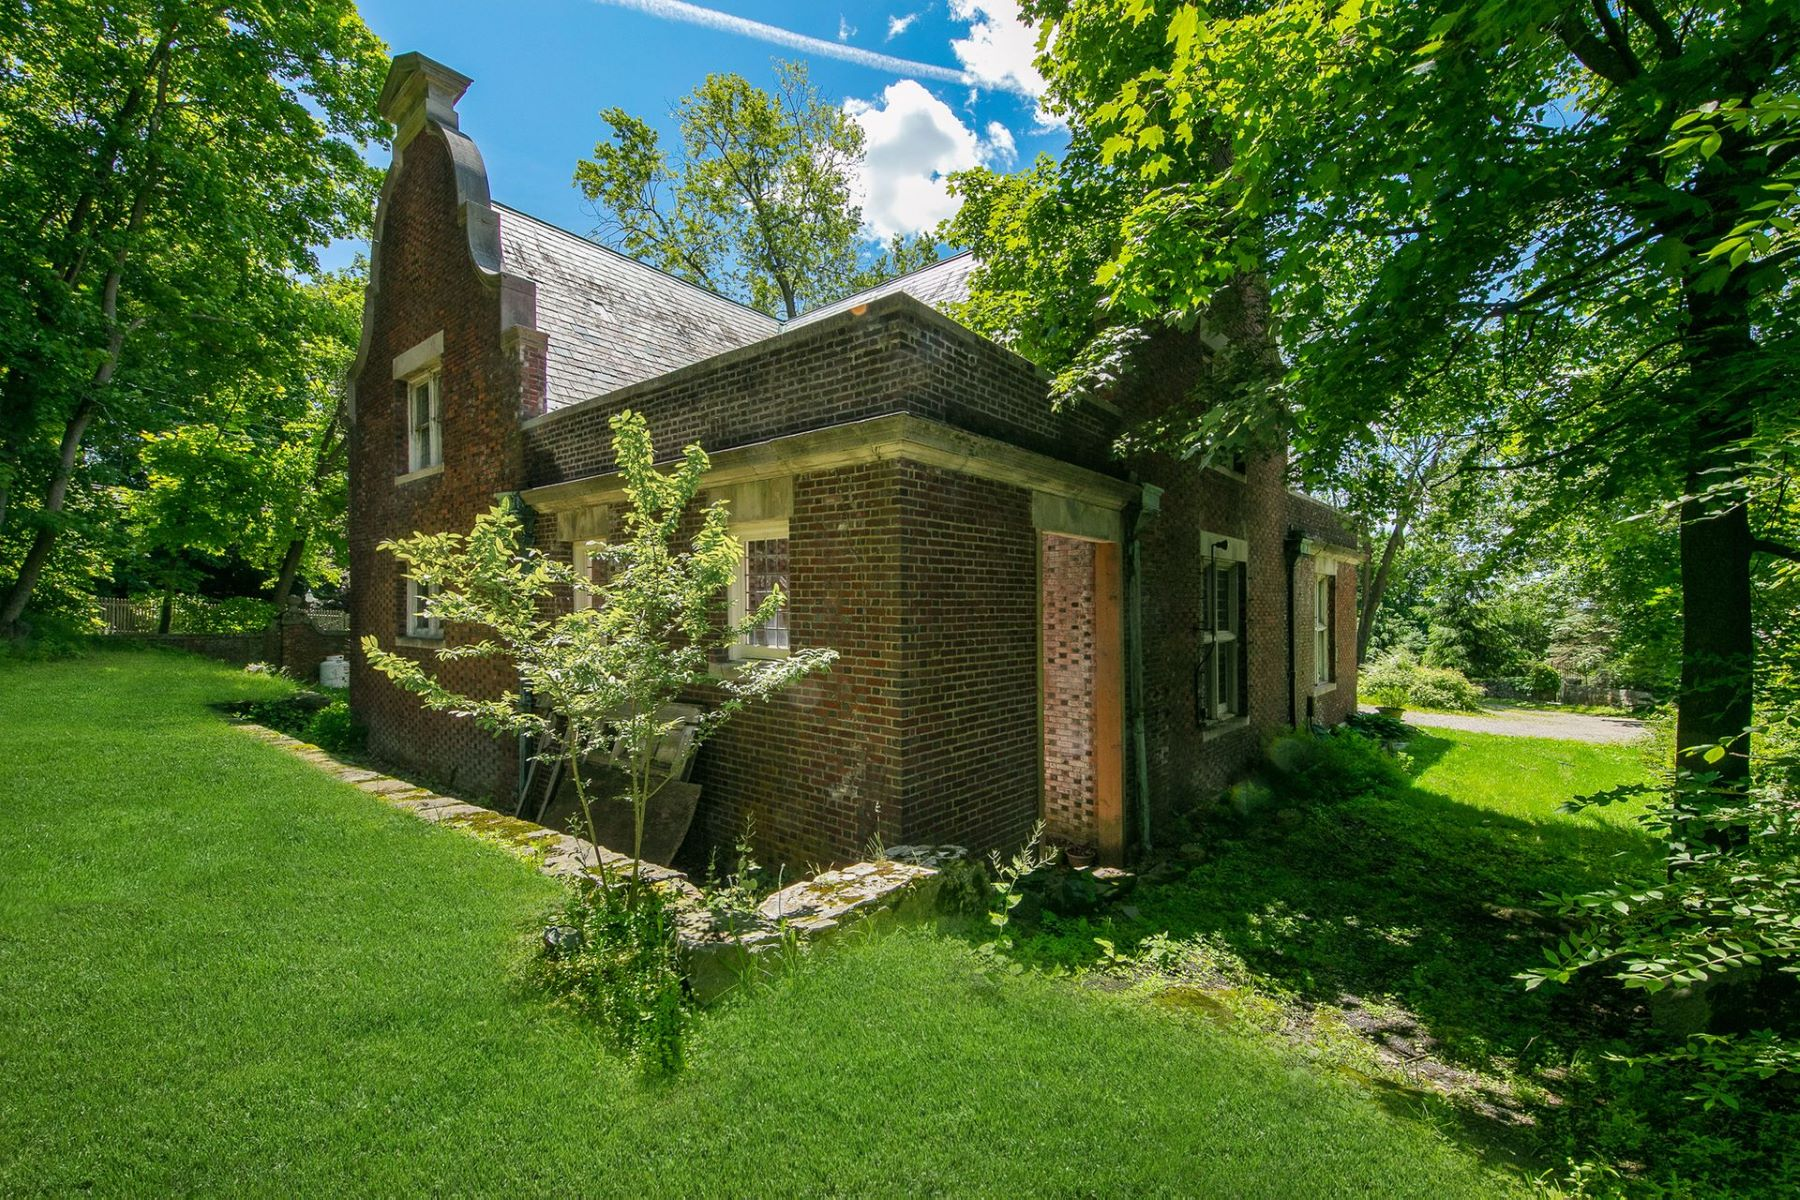 Additional photo for property listing at Historic Henry V Poor Carriage House 72 Circuit Road Tuxedo Park, New York 10987 United States